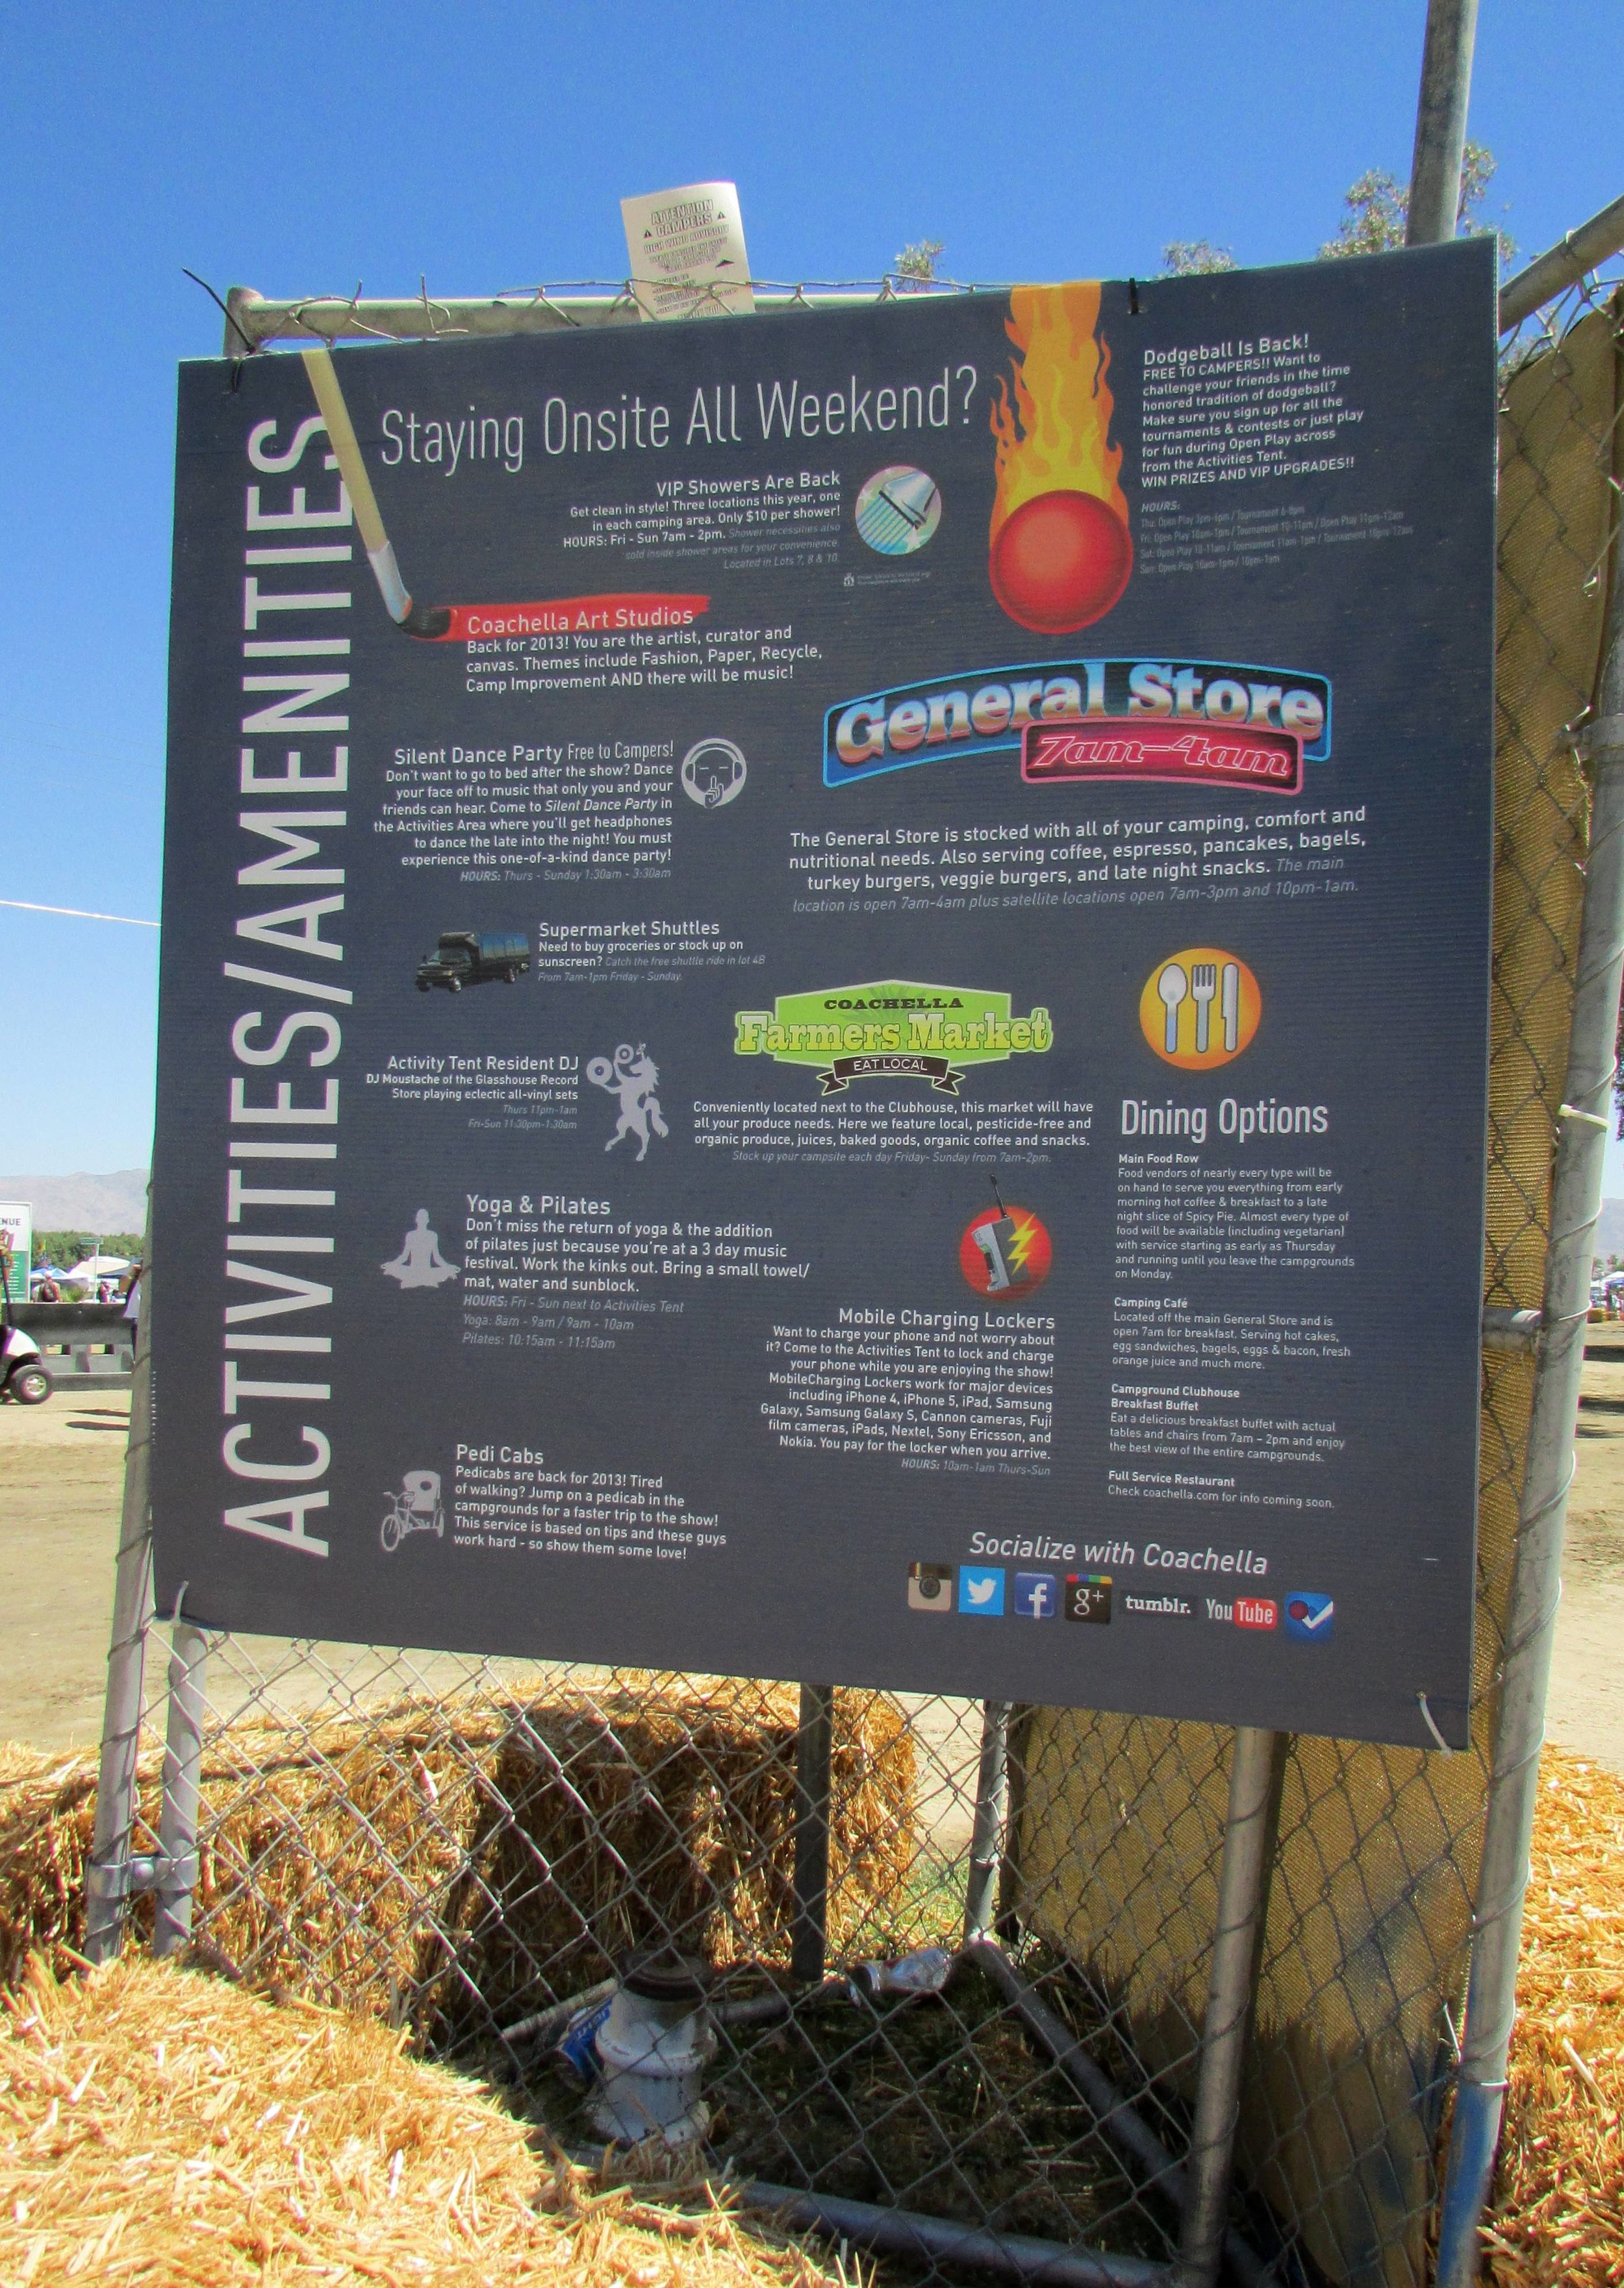 There are a plethora of activities and services to be found in and around the campgrounds